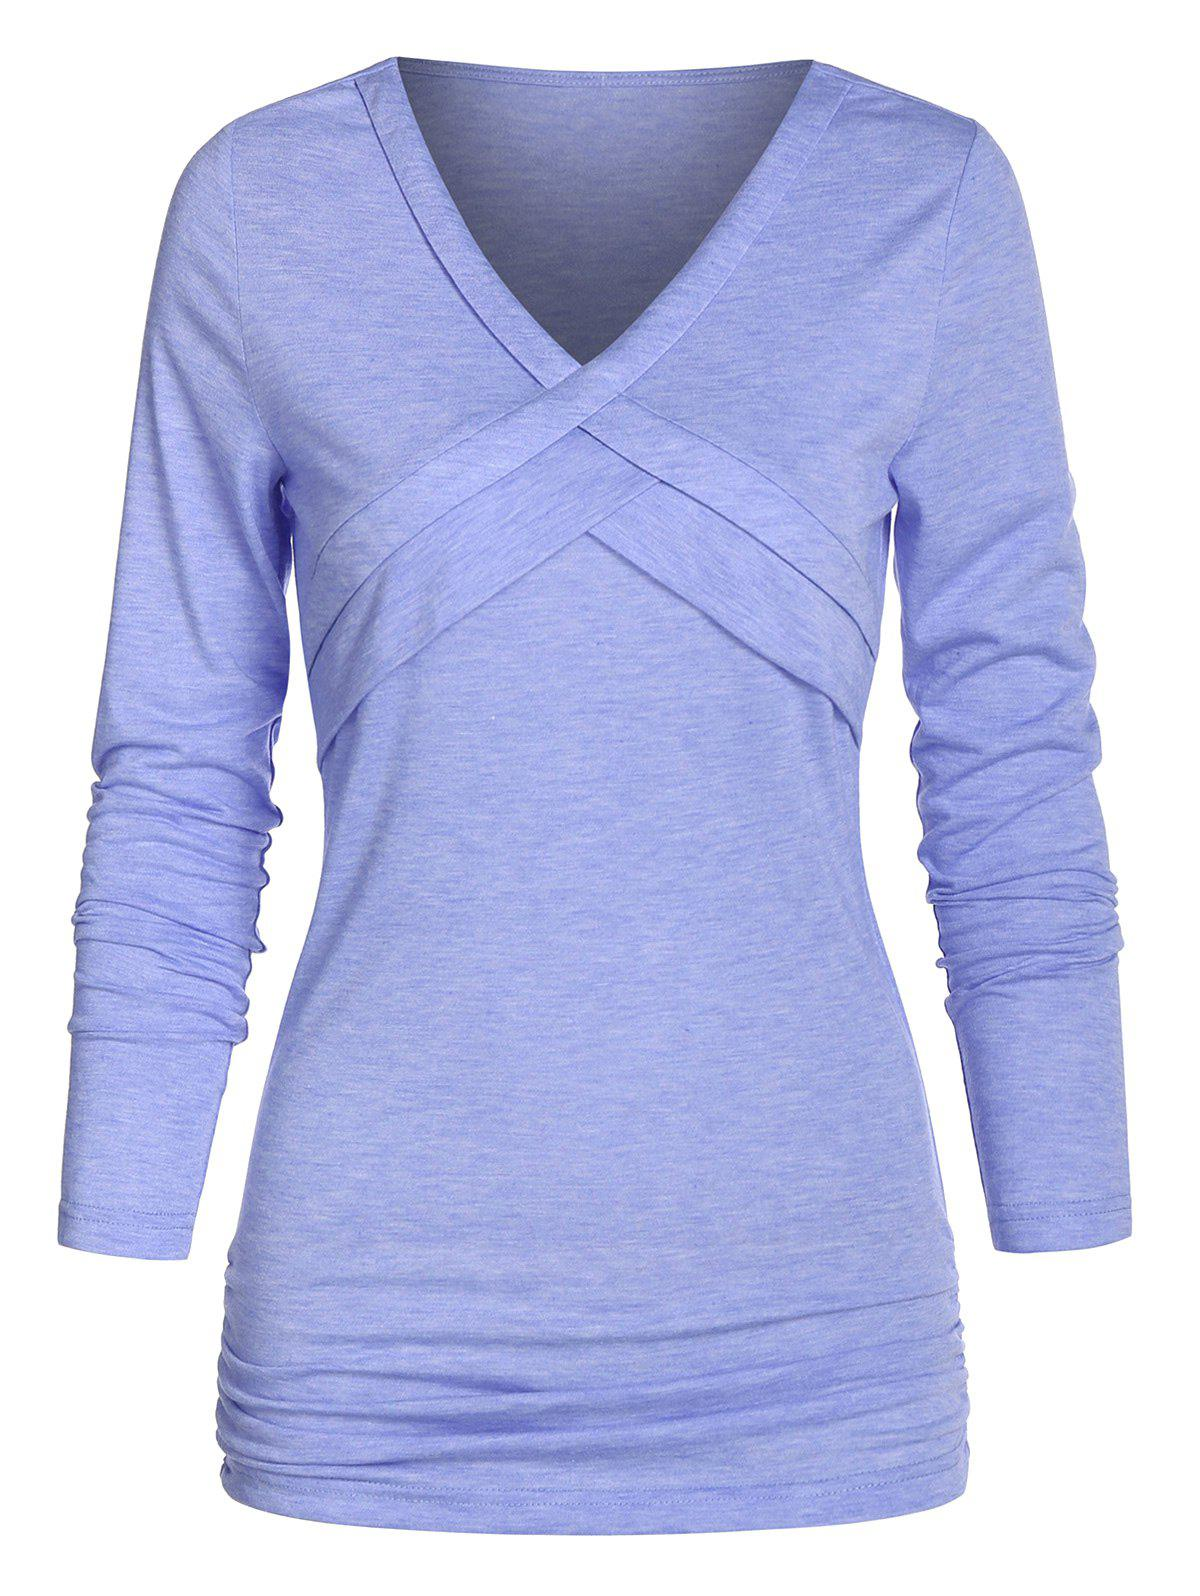 V Neck Front Crisscross Ruched T Shirt - SKY BLUE 3XL